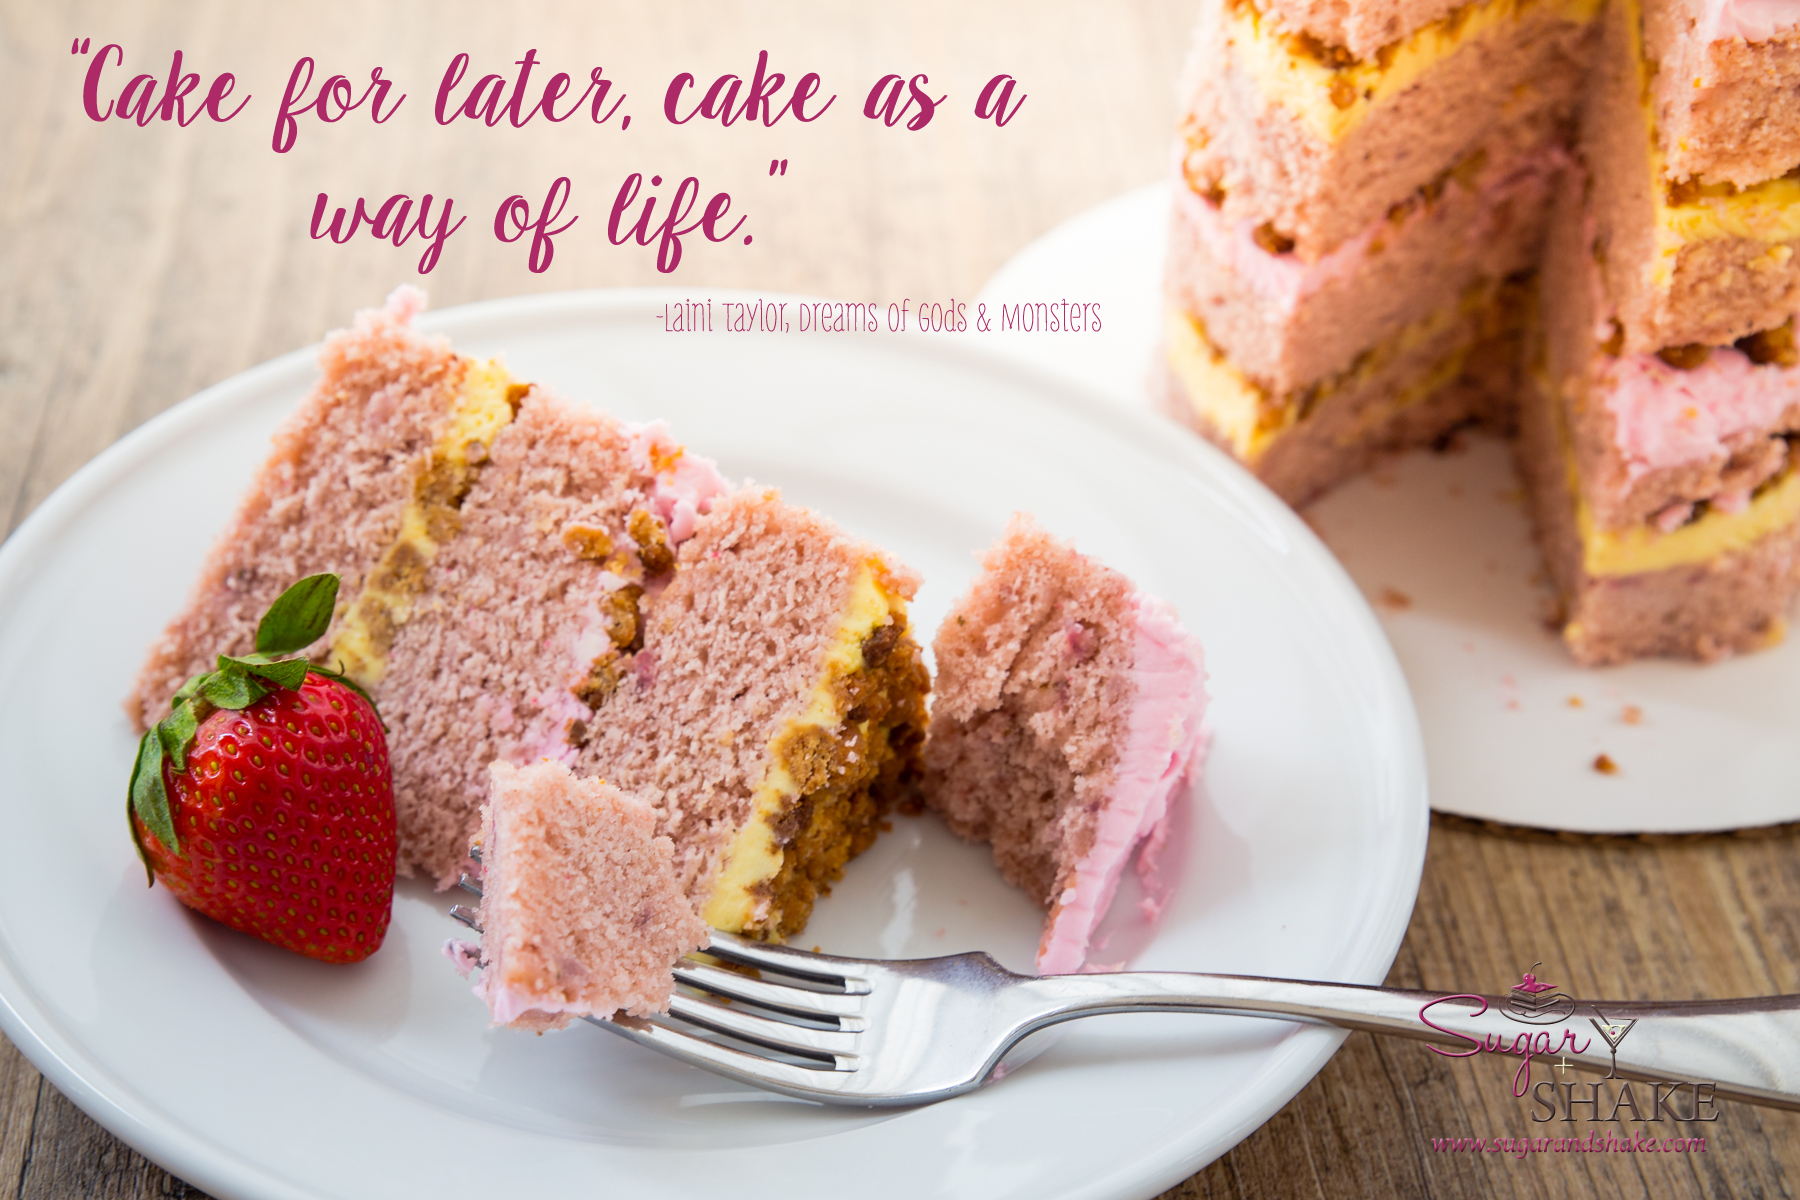 """""""Cake for later, cake as a way of life."""" ― Laini Taylor, Dreams of Gods & Monsters 